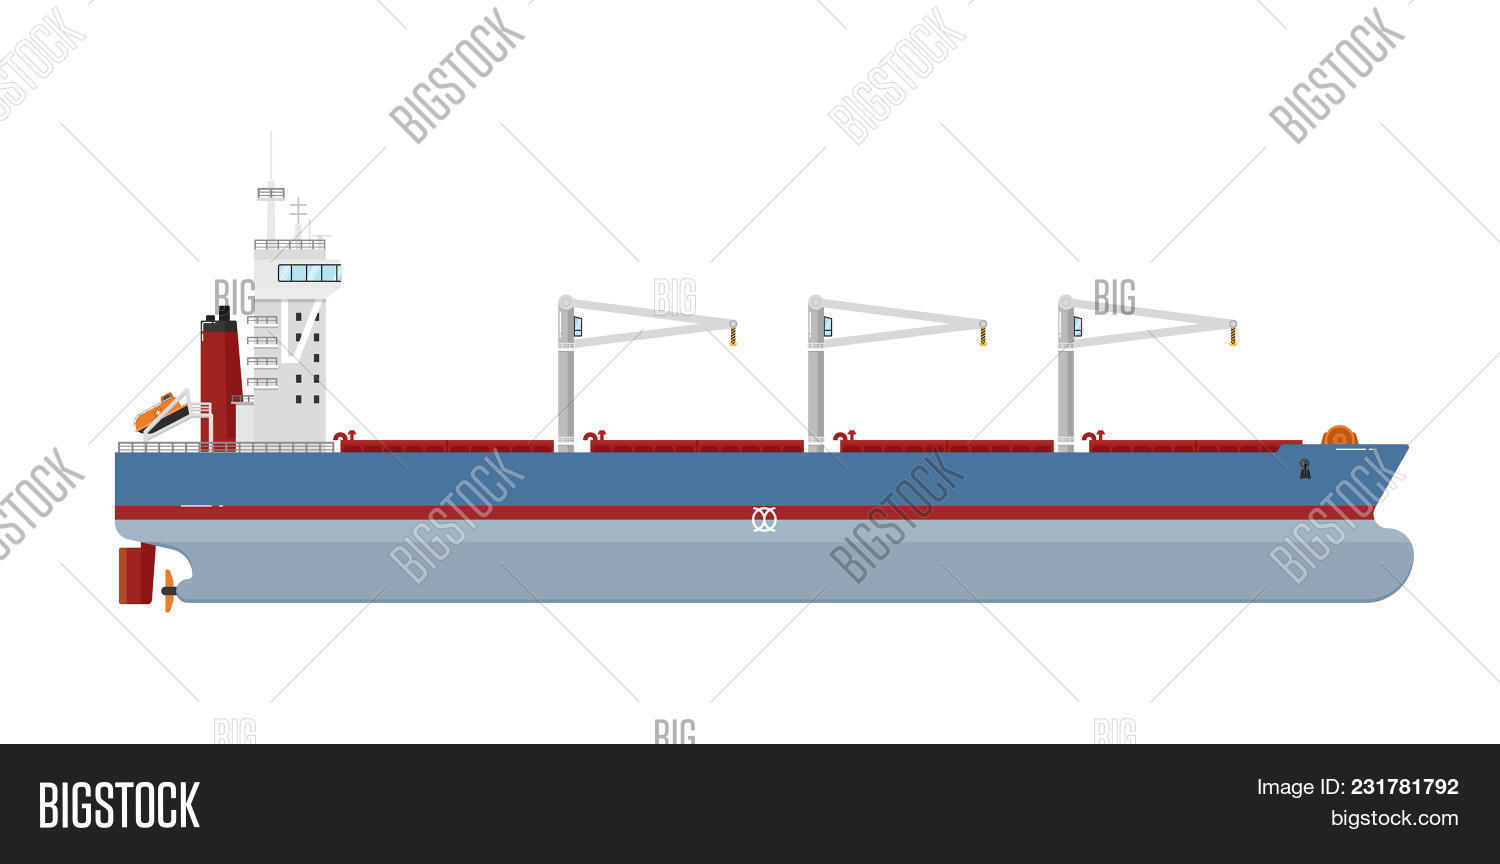 hight resolution of cargo ship with cranes isolated on white background illustration freight tanker side view commerci